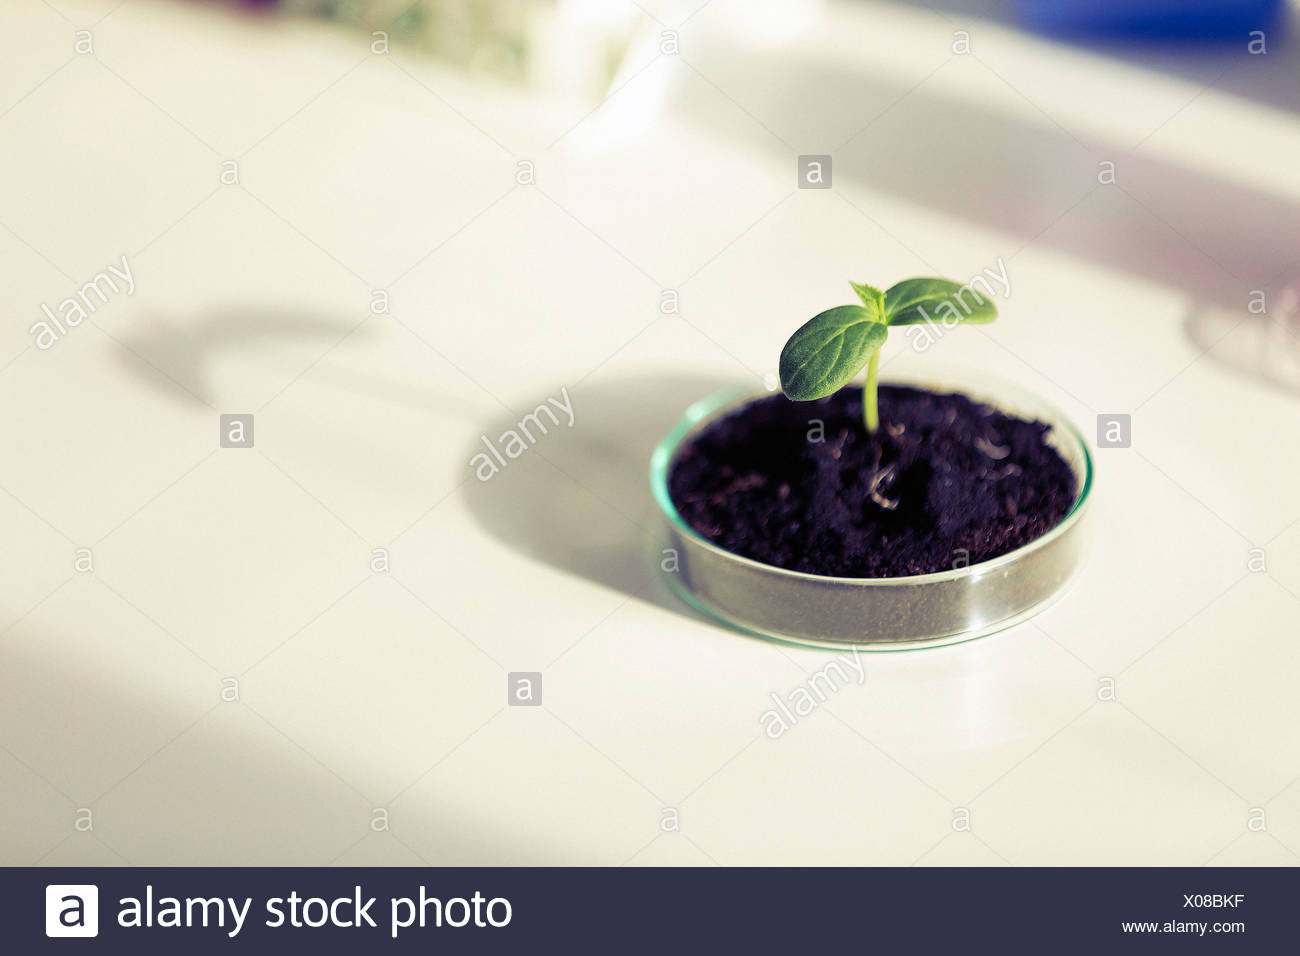 Seedling in a petri dish biotechnology concept. - Stock Image